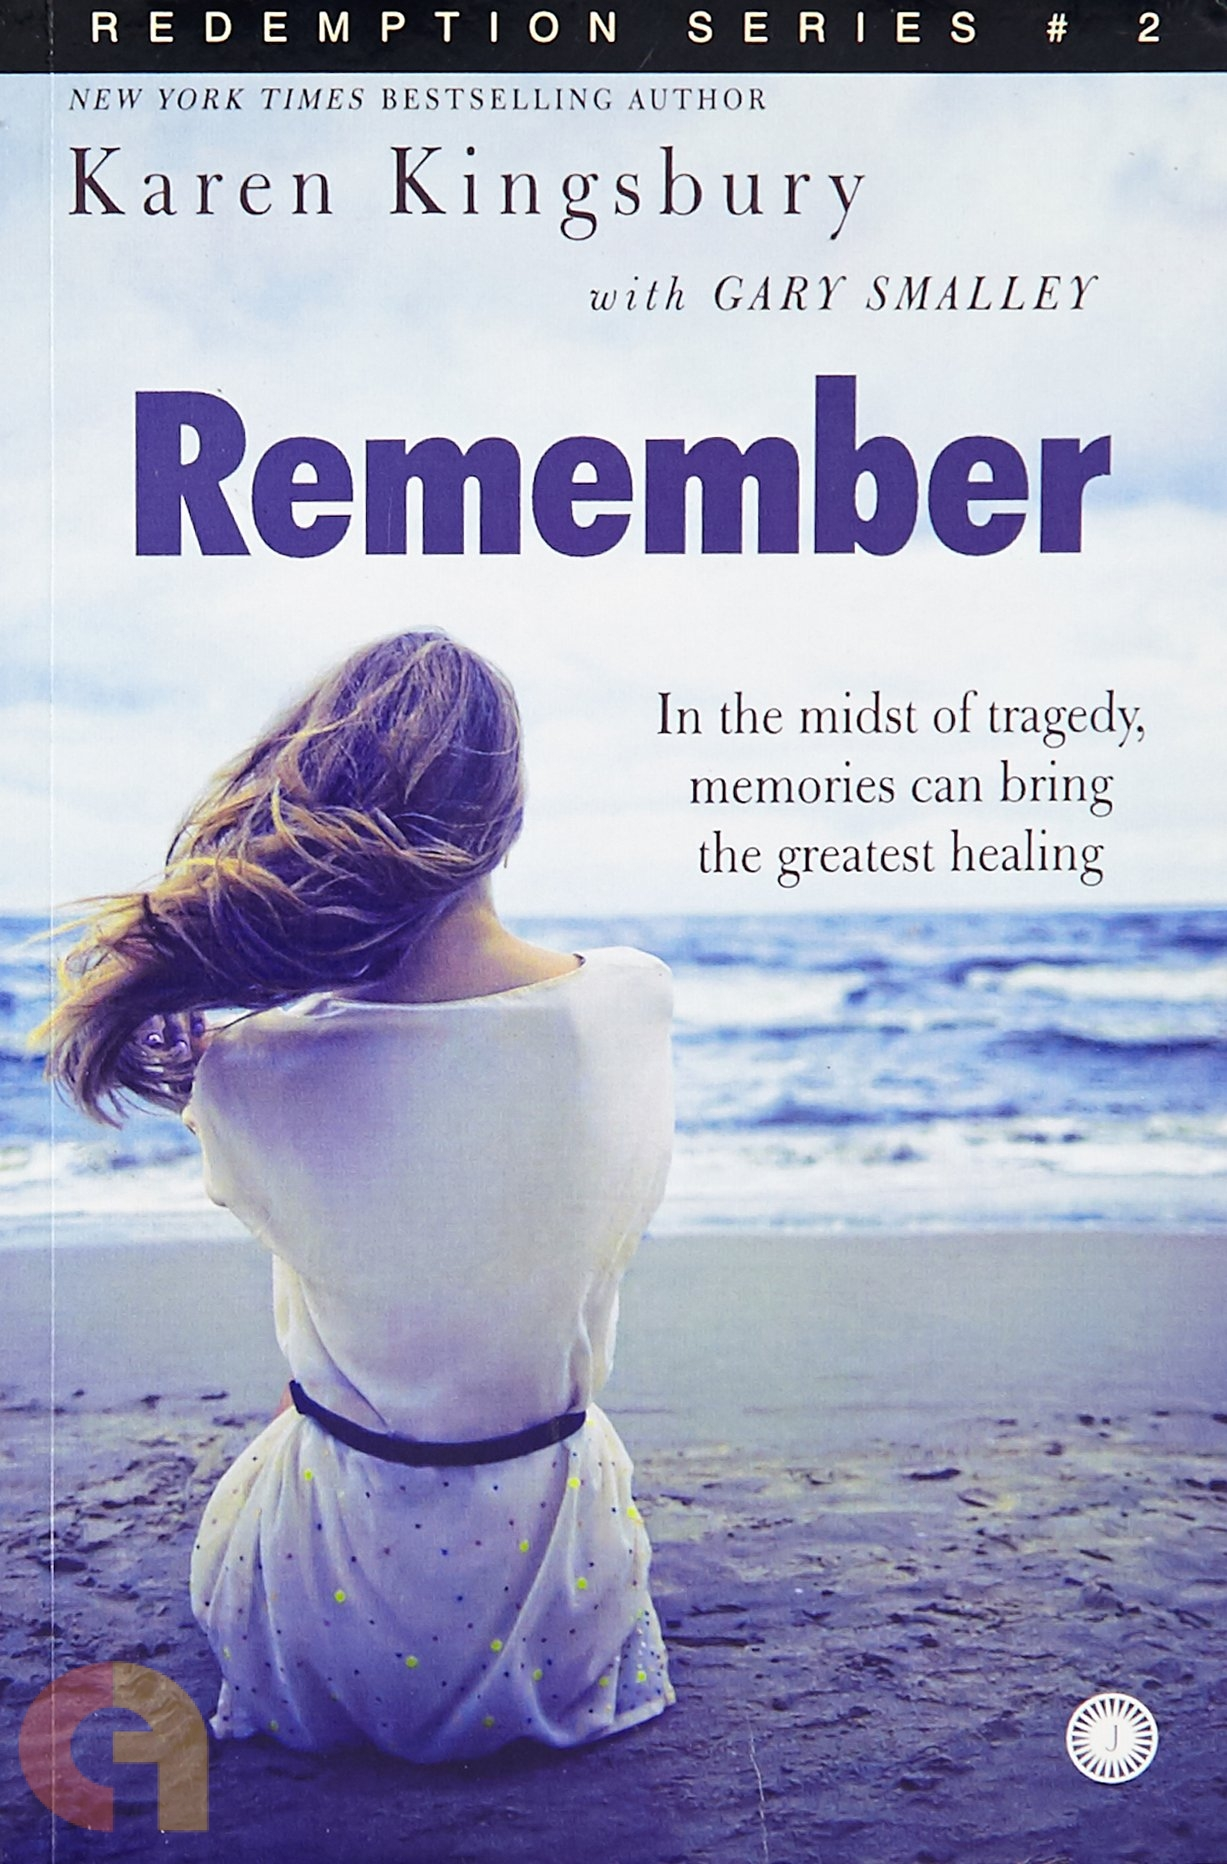 Redemption Series # 2: Remember